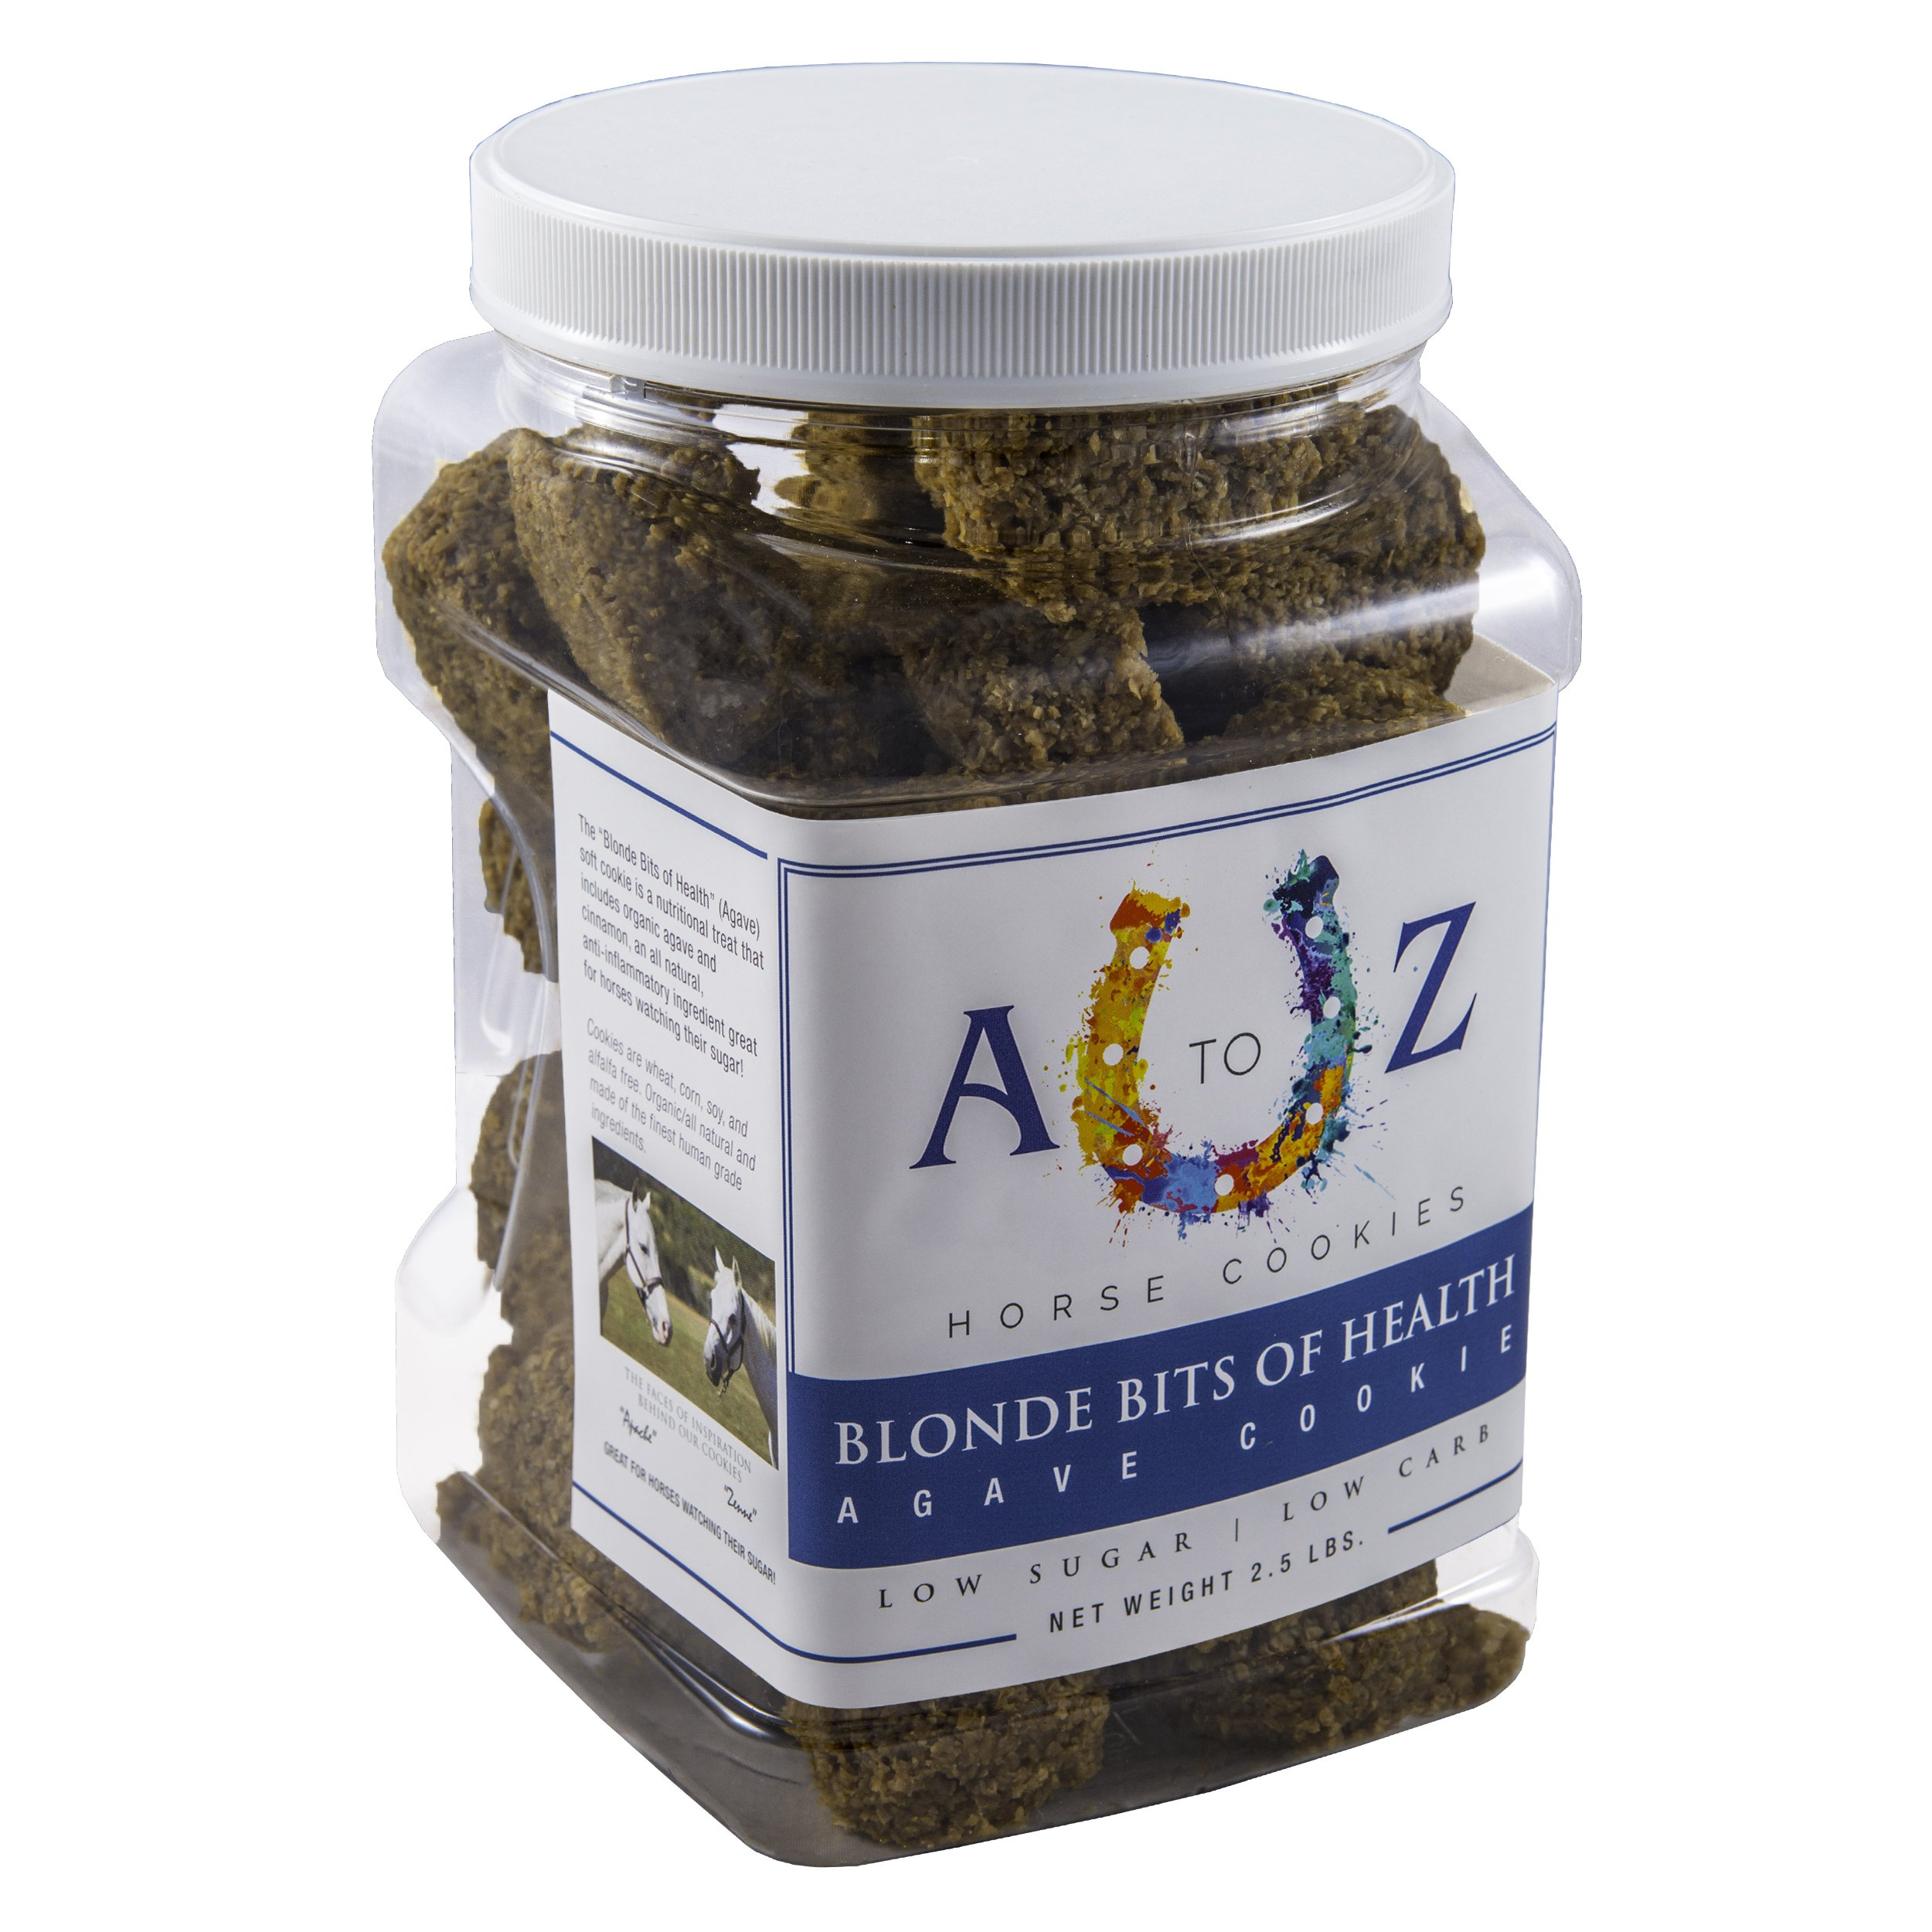 Horse Cookie Treat: Blond Bits of Health Flavor by A - Z Horse Cookies, Low Carb Low Sugar Softer Treats, Organic, Great for All Horses and Excellent for Those with Metabolic Conditions, 2.5 lbs Jar